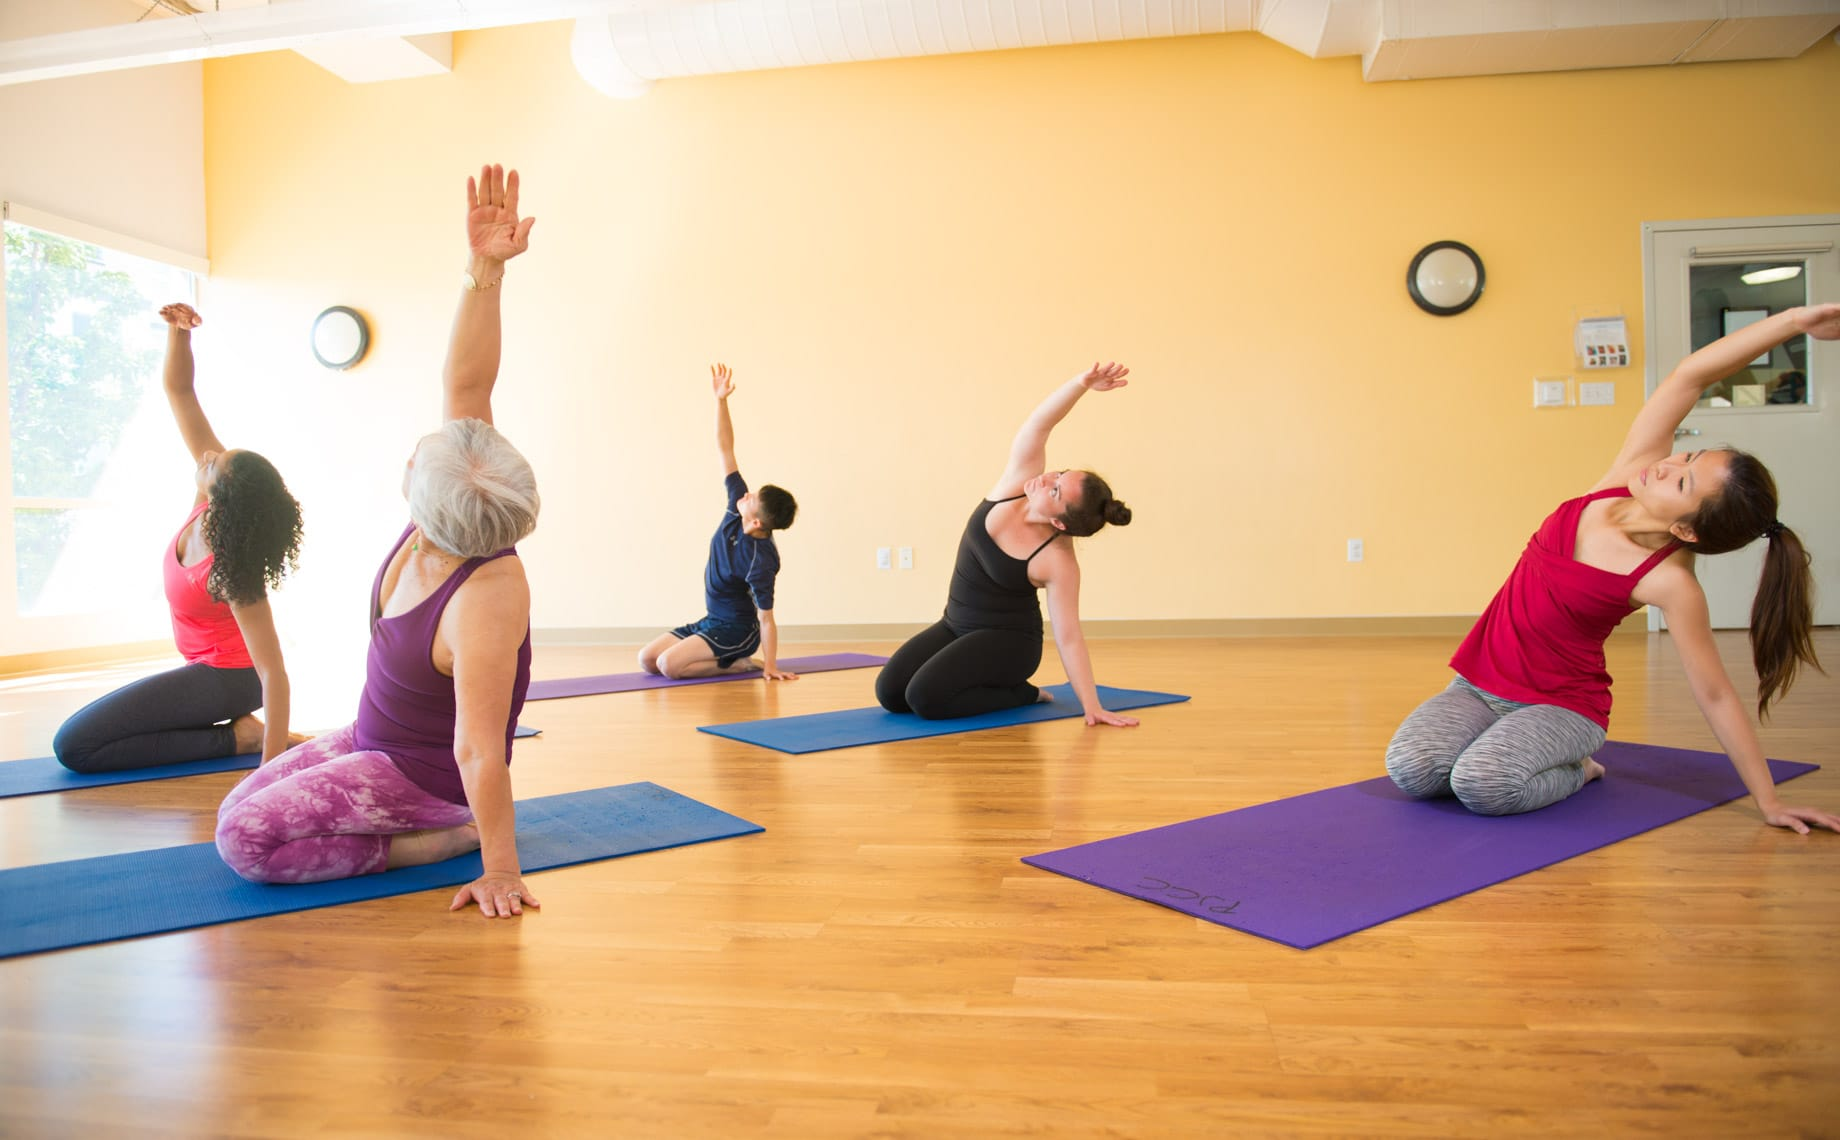 Yoga students stretching on mats at the PJCC yoga studio